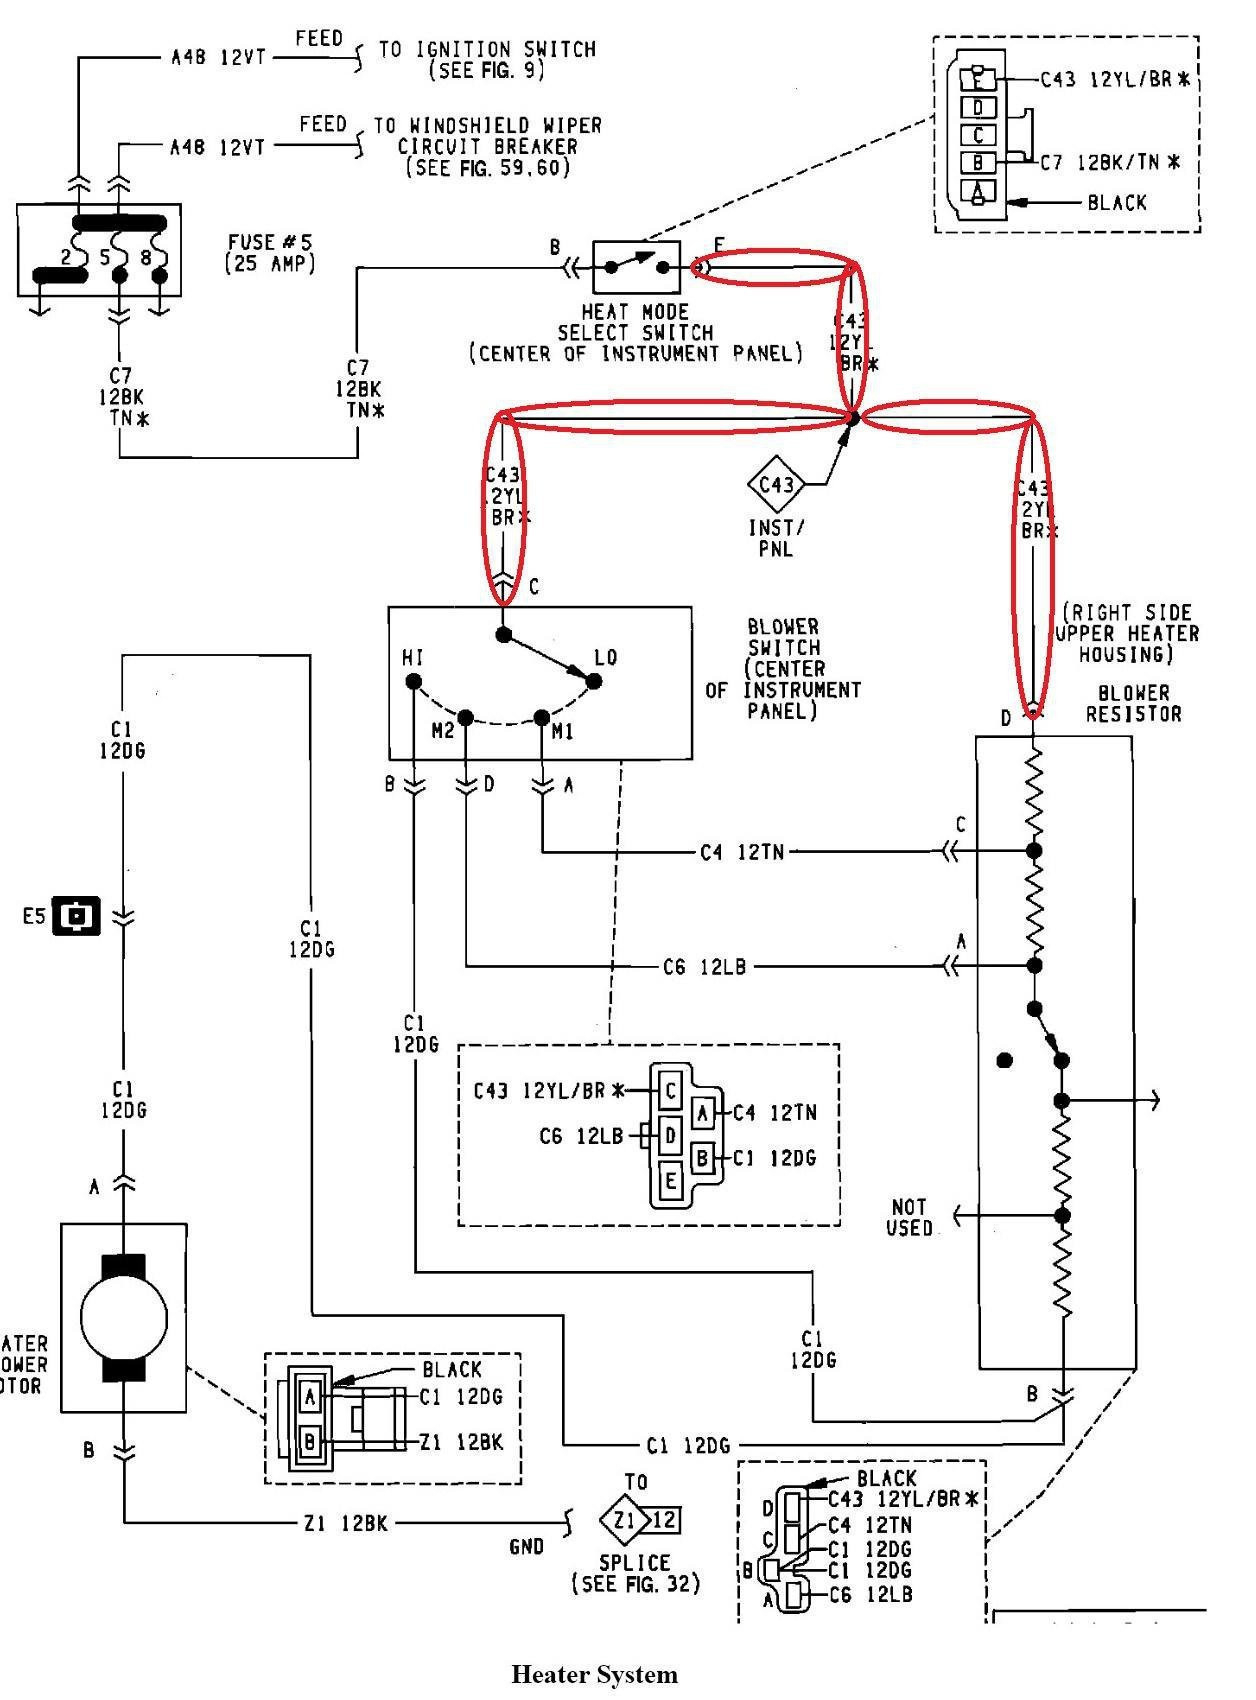 Golf Cart Voltage Reducer Wiring Diagram Rate 12 Volt Golf Cart - Golf Cart Voltage Reducer Wiring Diagram